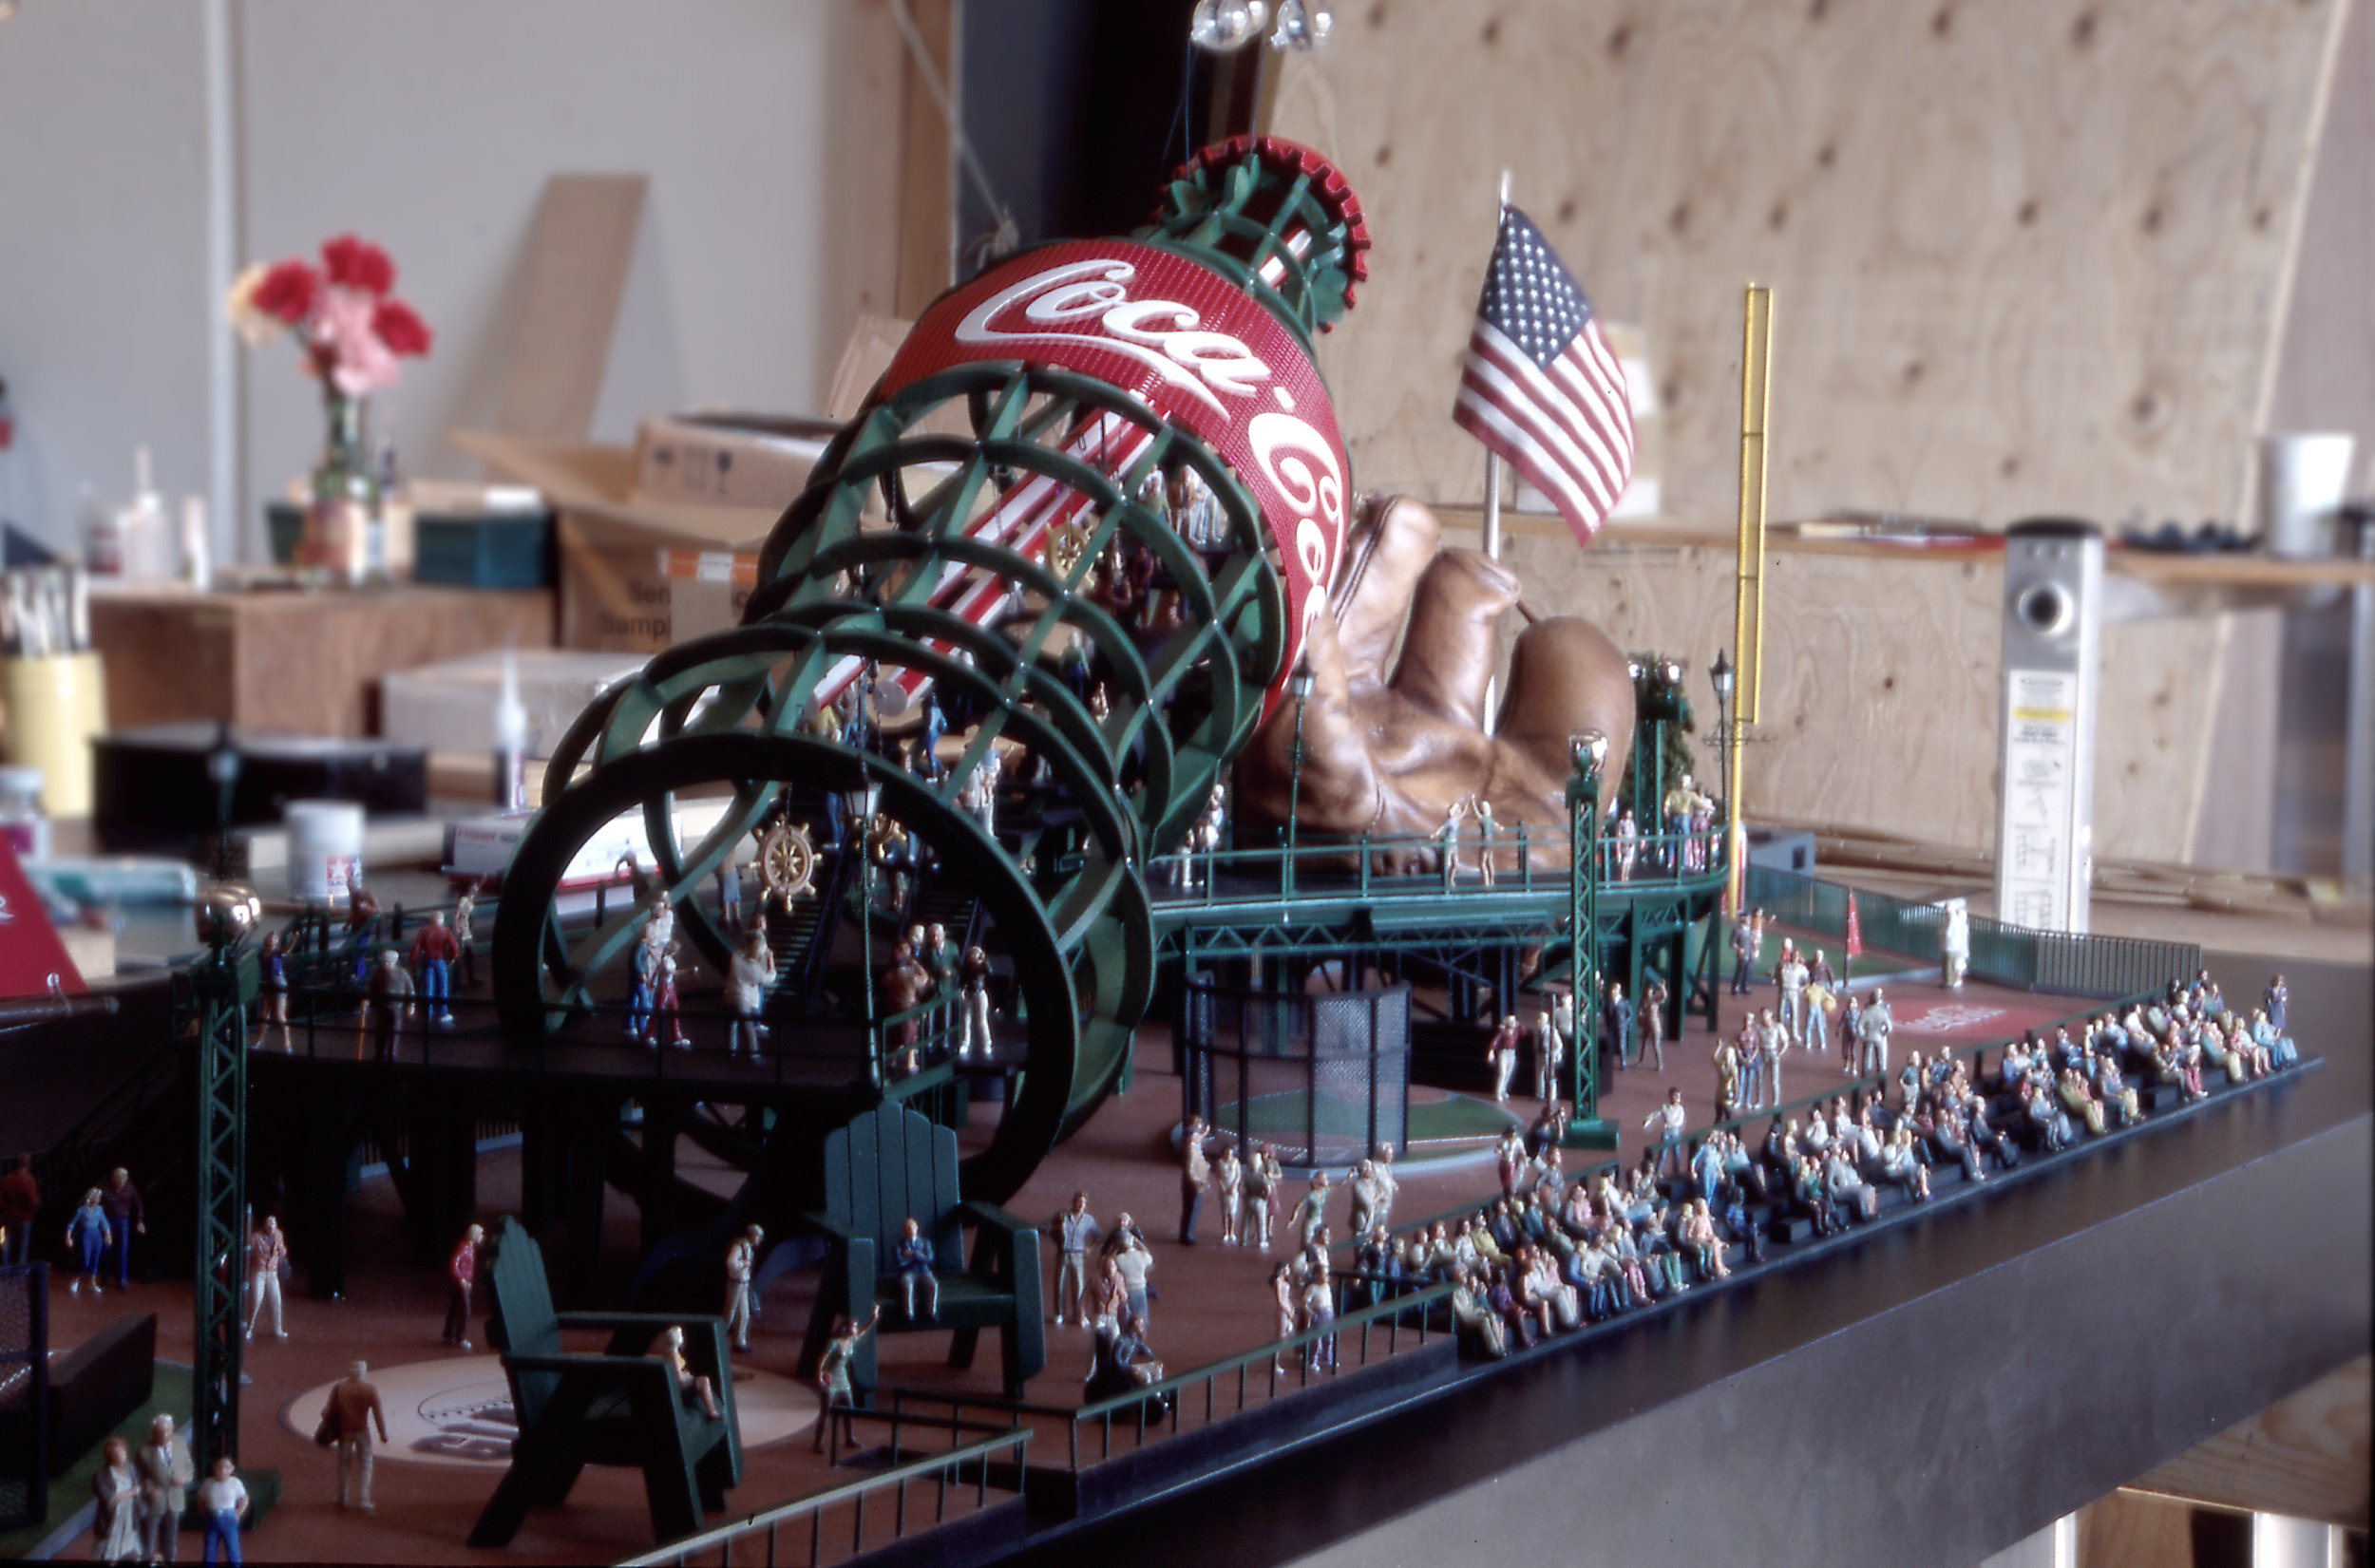 Giant Mitt and Coca-Cola Bottle Slide Scale Model